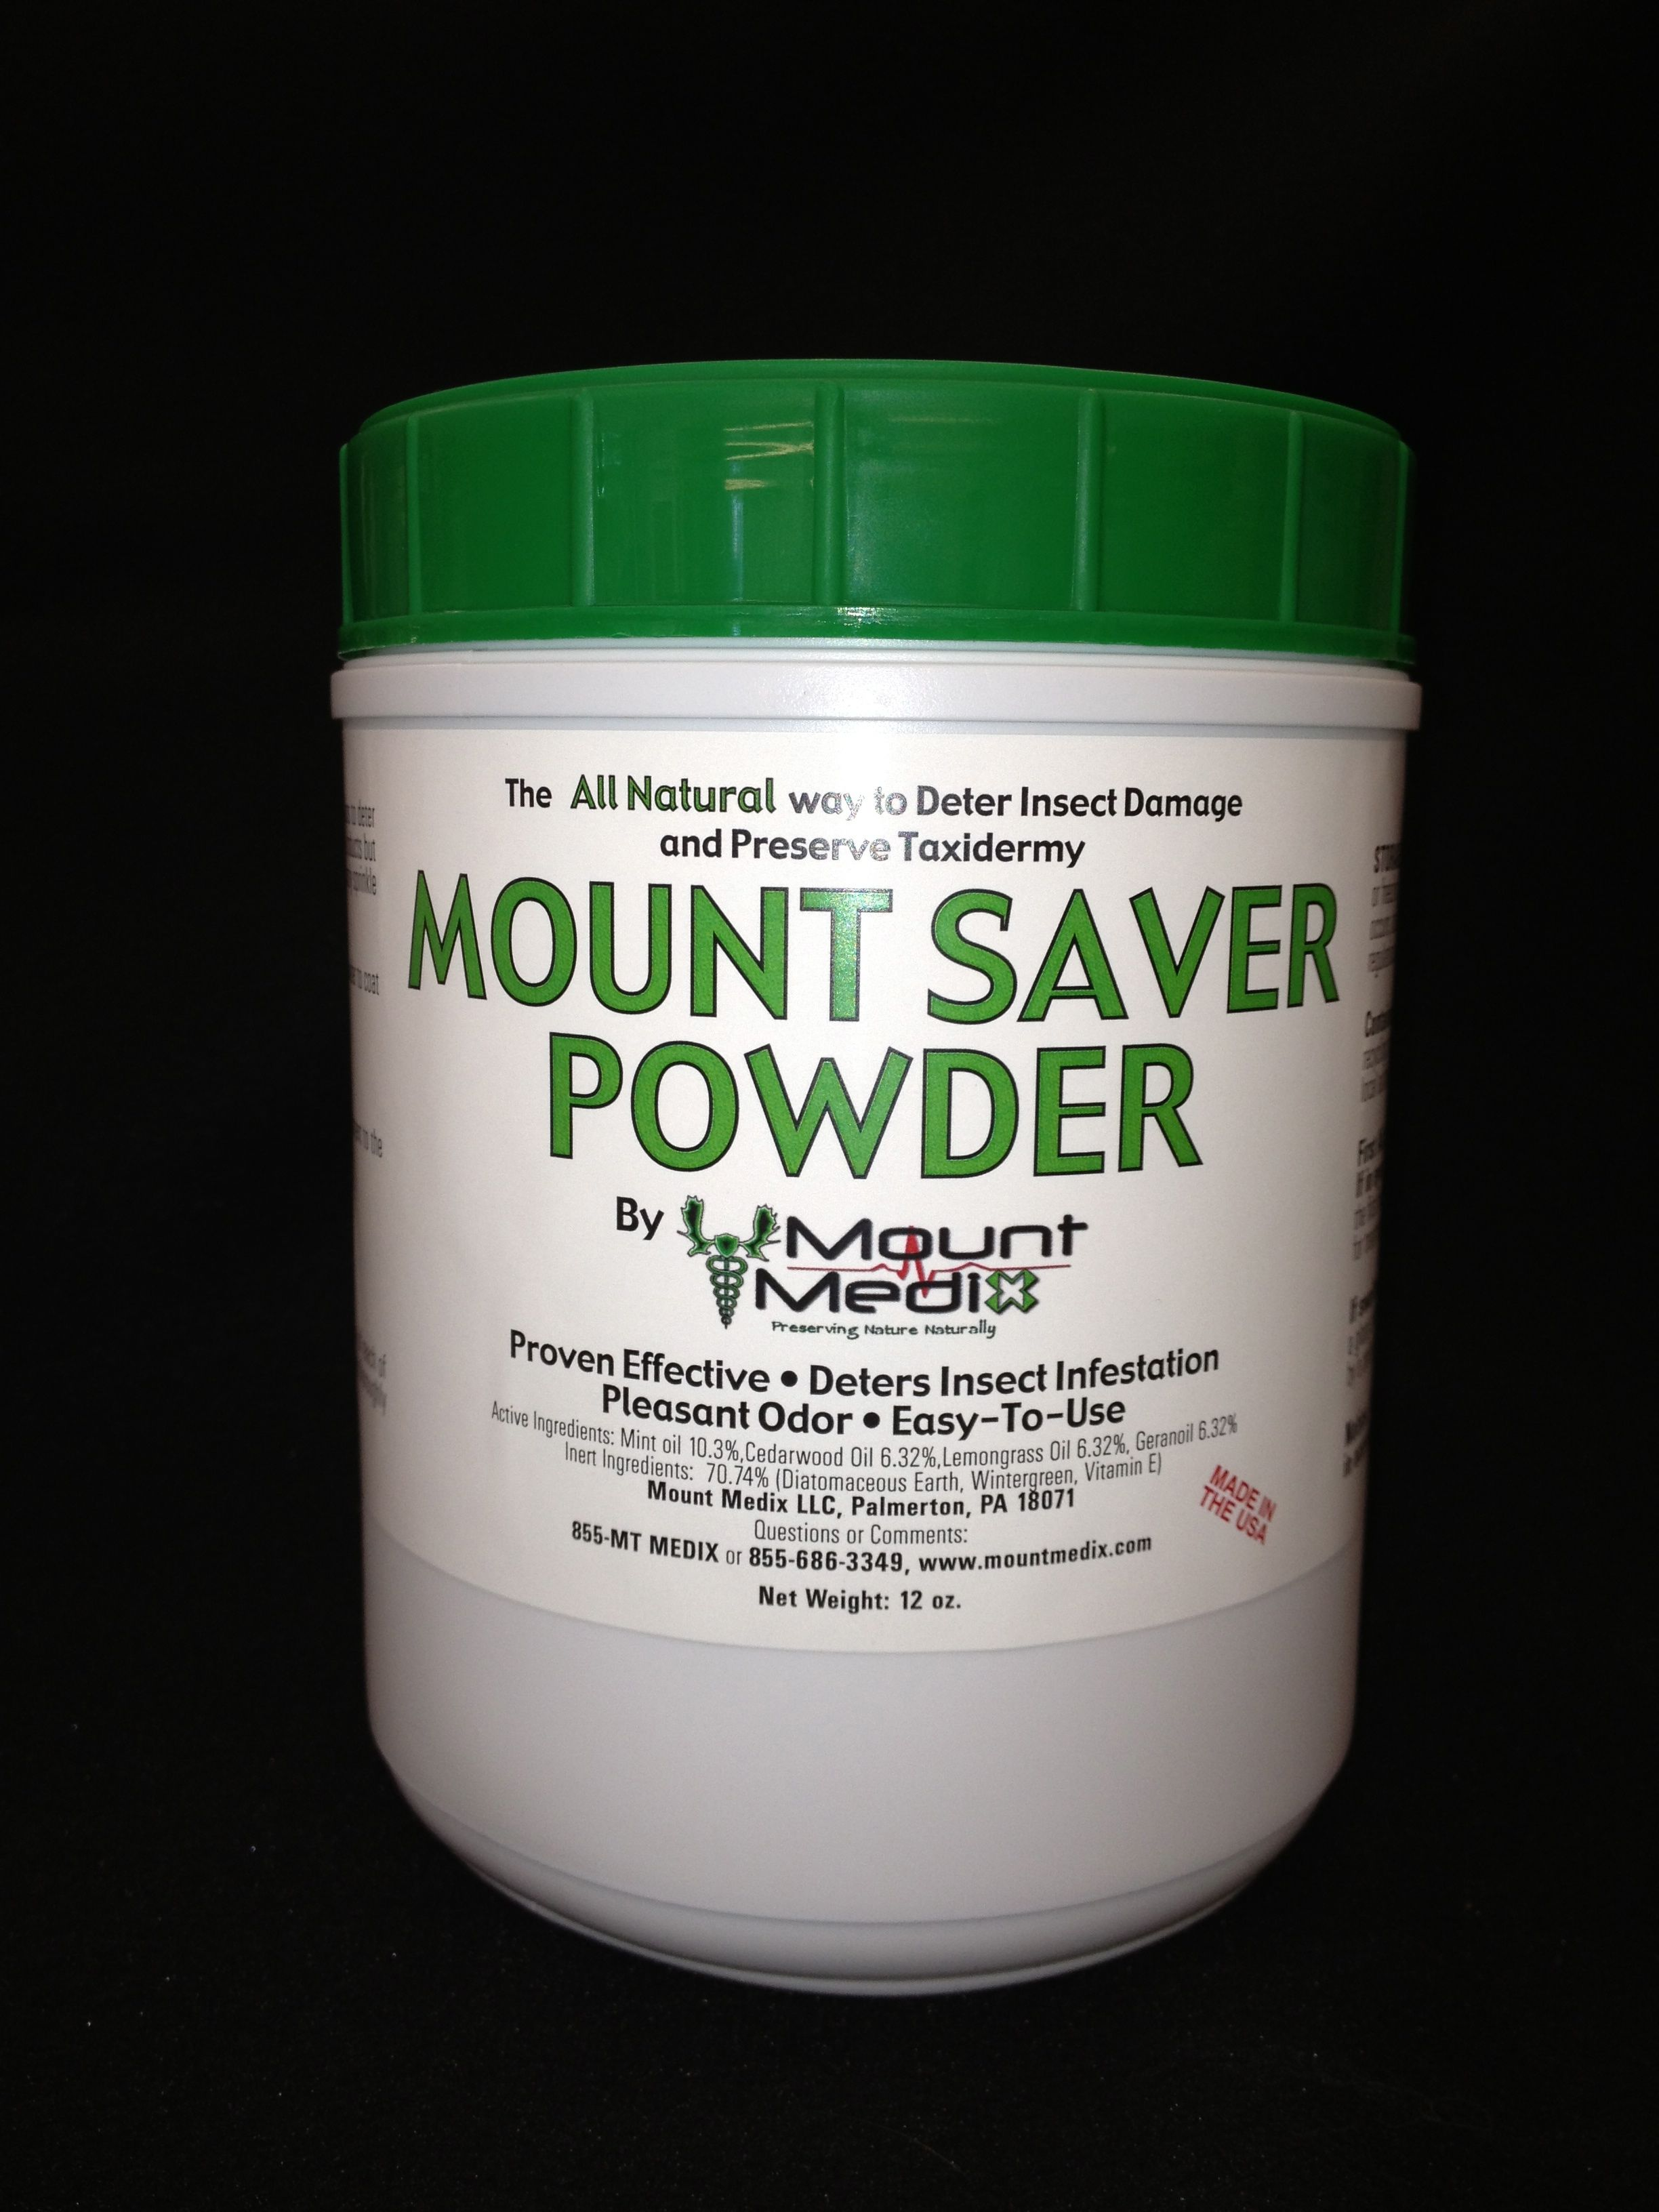 Mount Saver Powder Net weight 12 oz